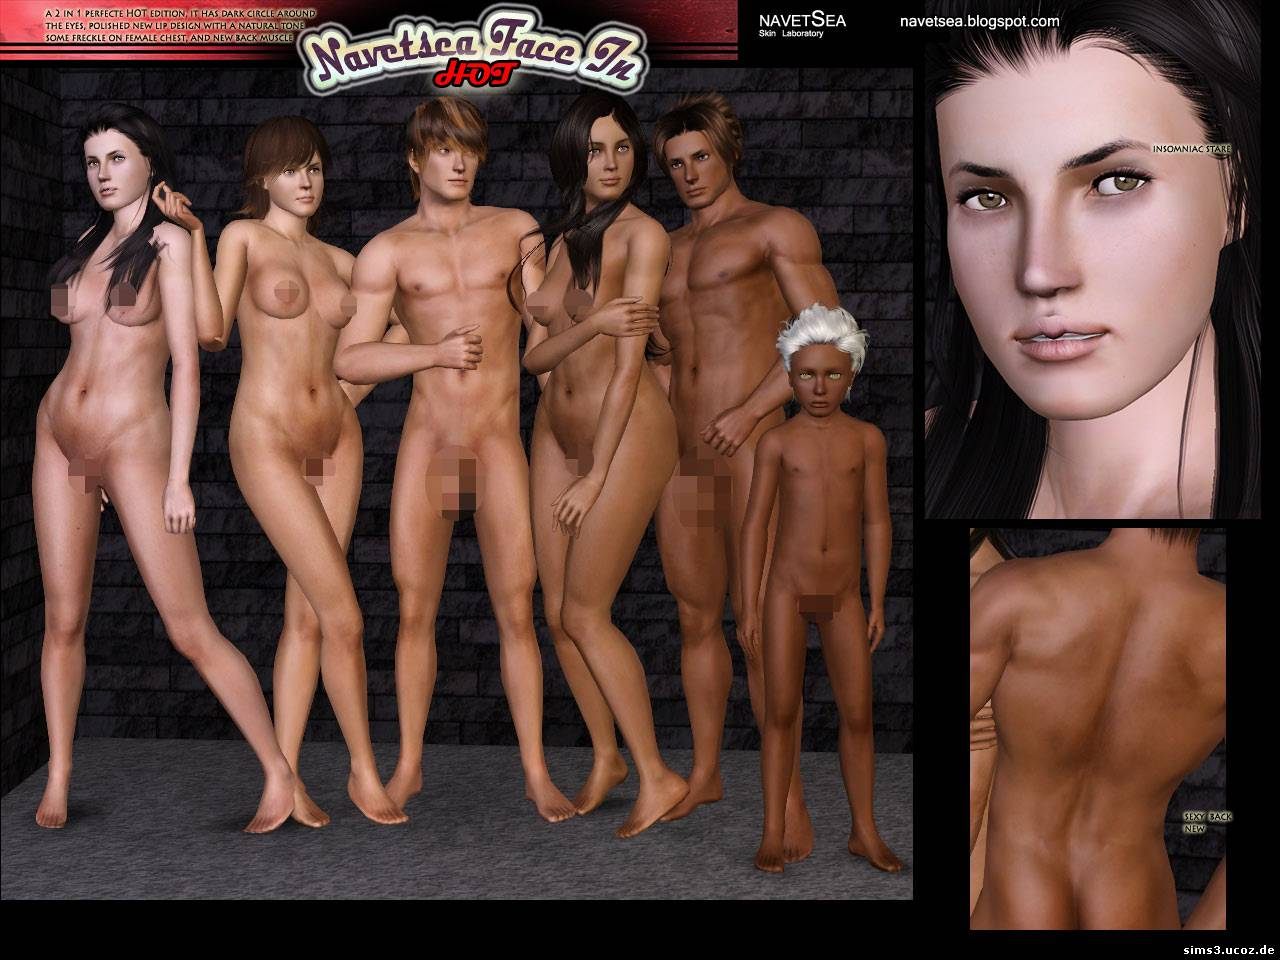 The sims nude skins pornos clips